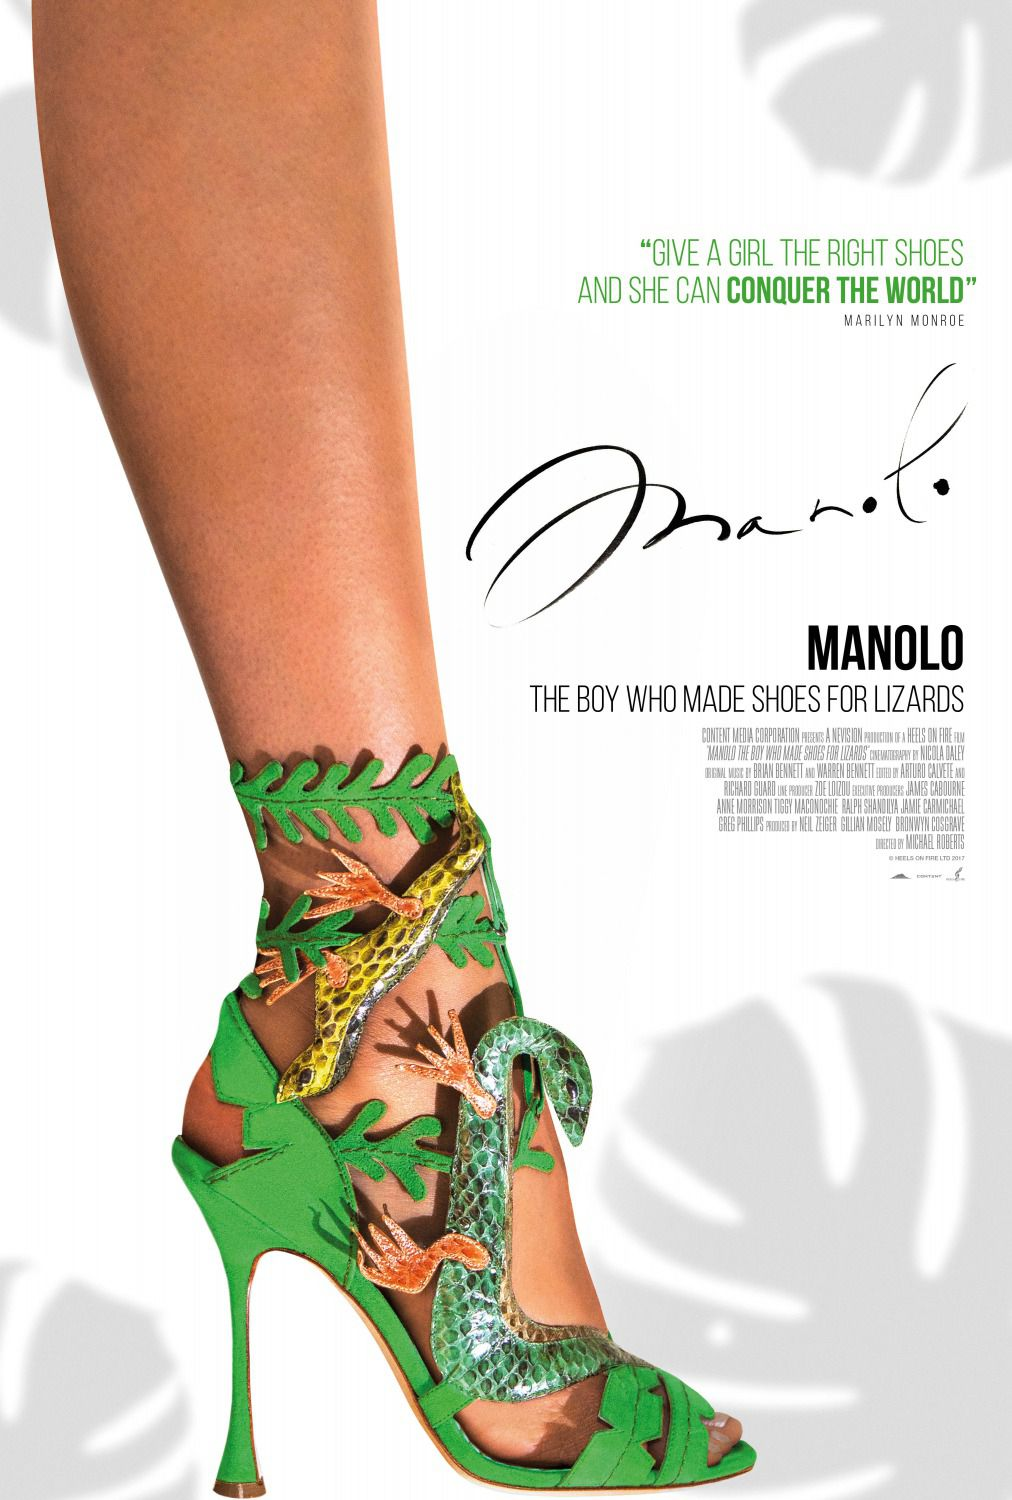 Manolo the Boy who made Shoes for Lizards - film poster